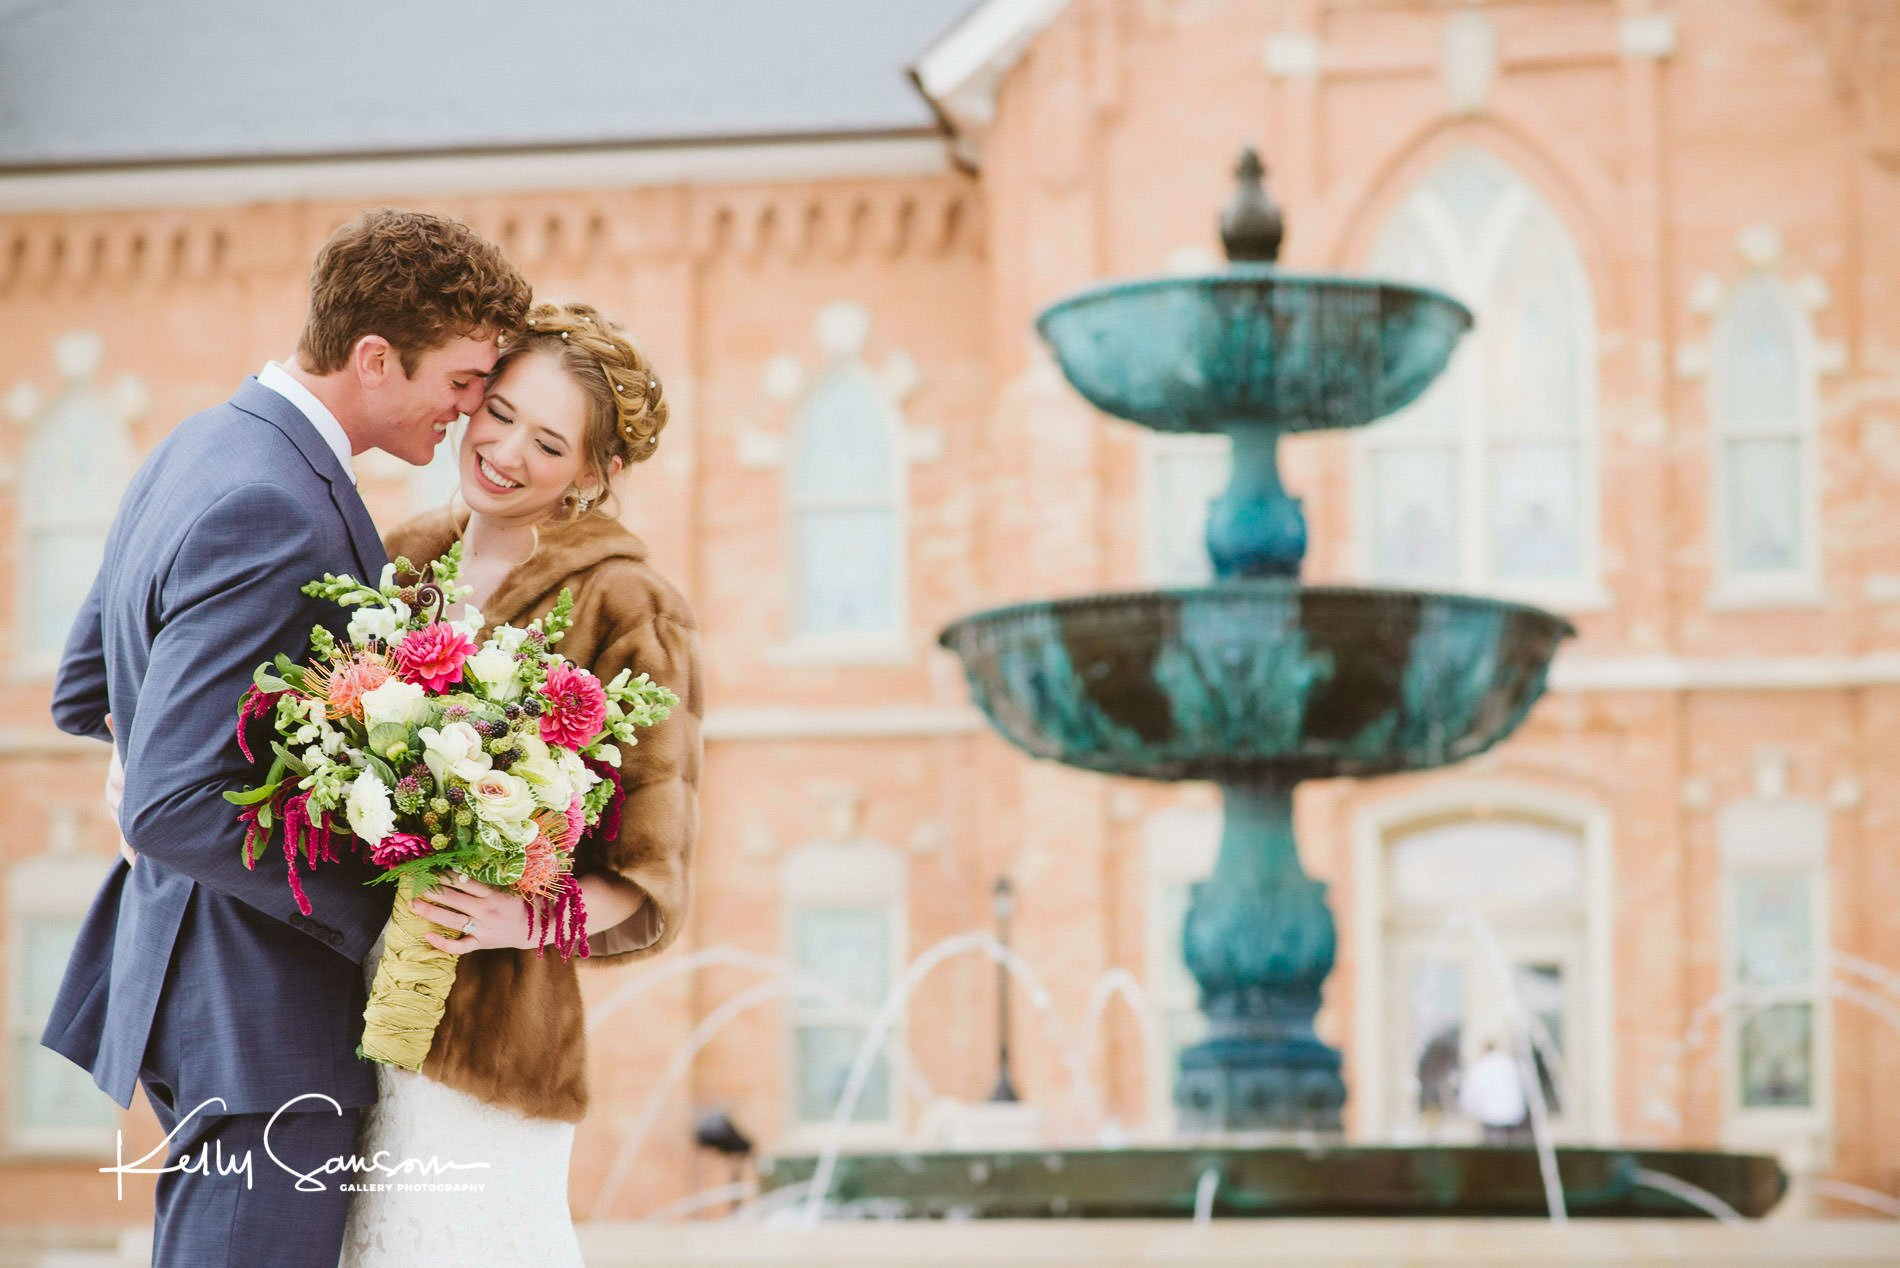 Bride and groom snuggling in front of fountain for wedding photography at Provo city center lds temple.